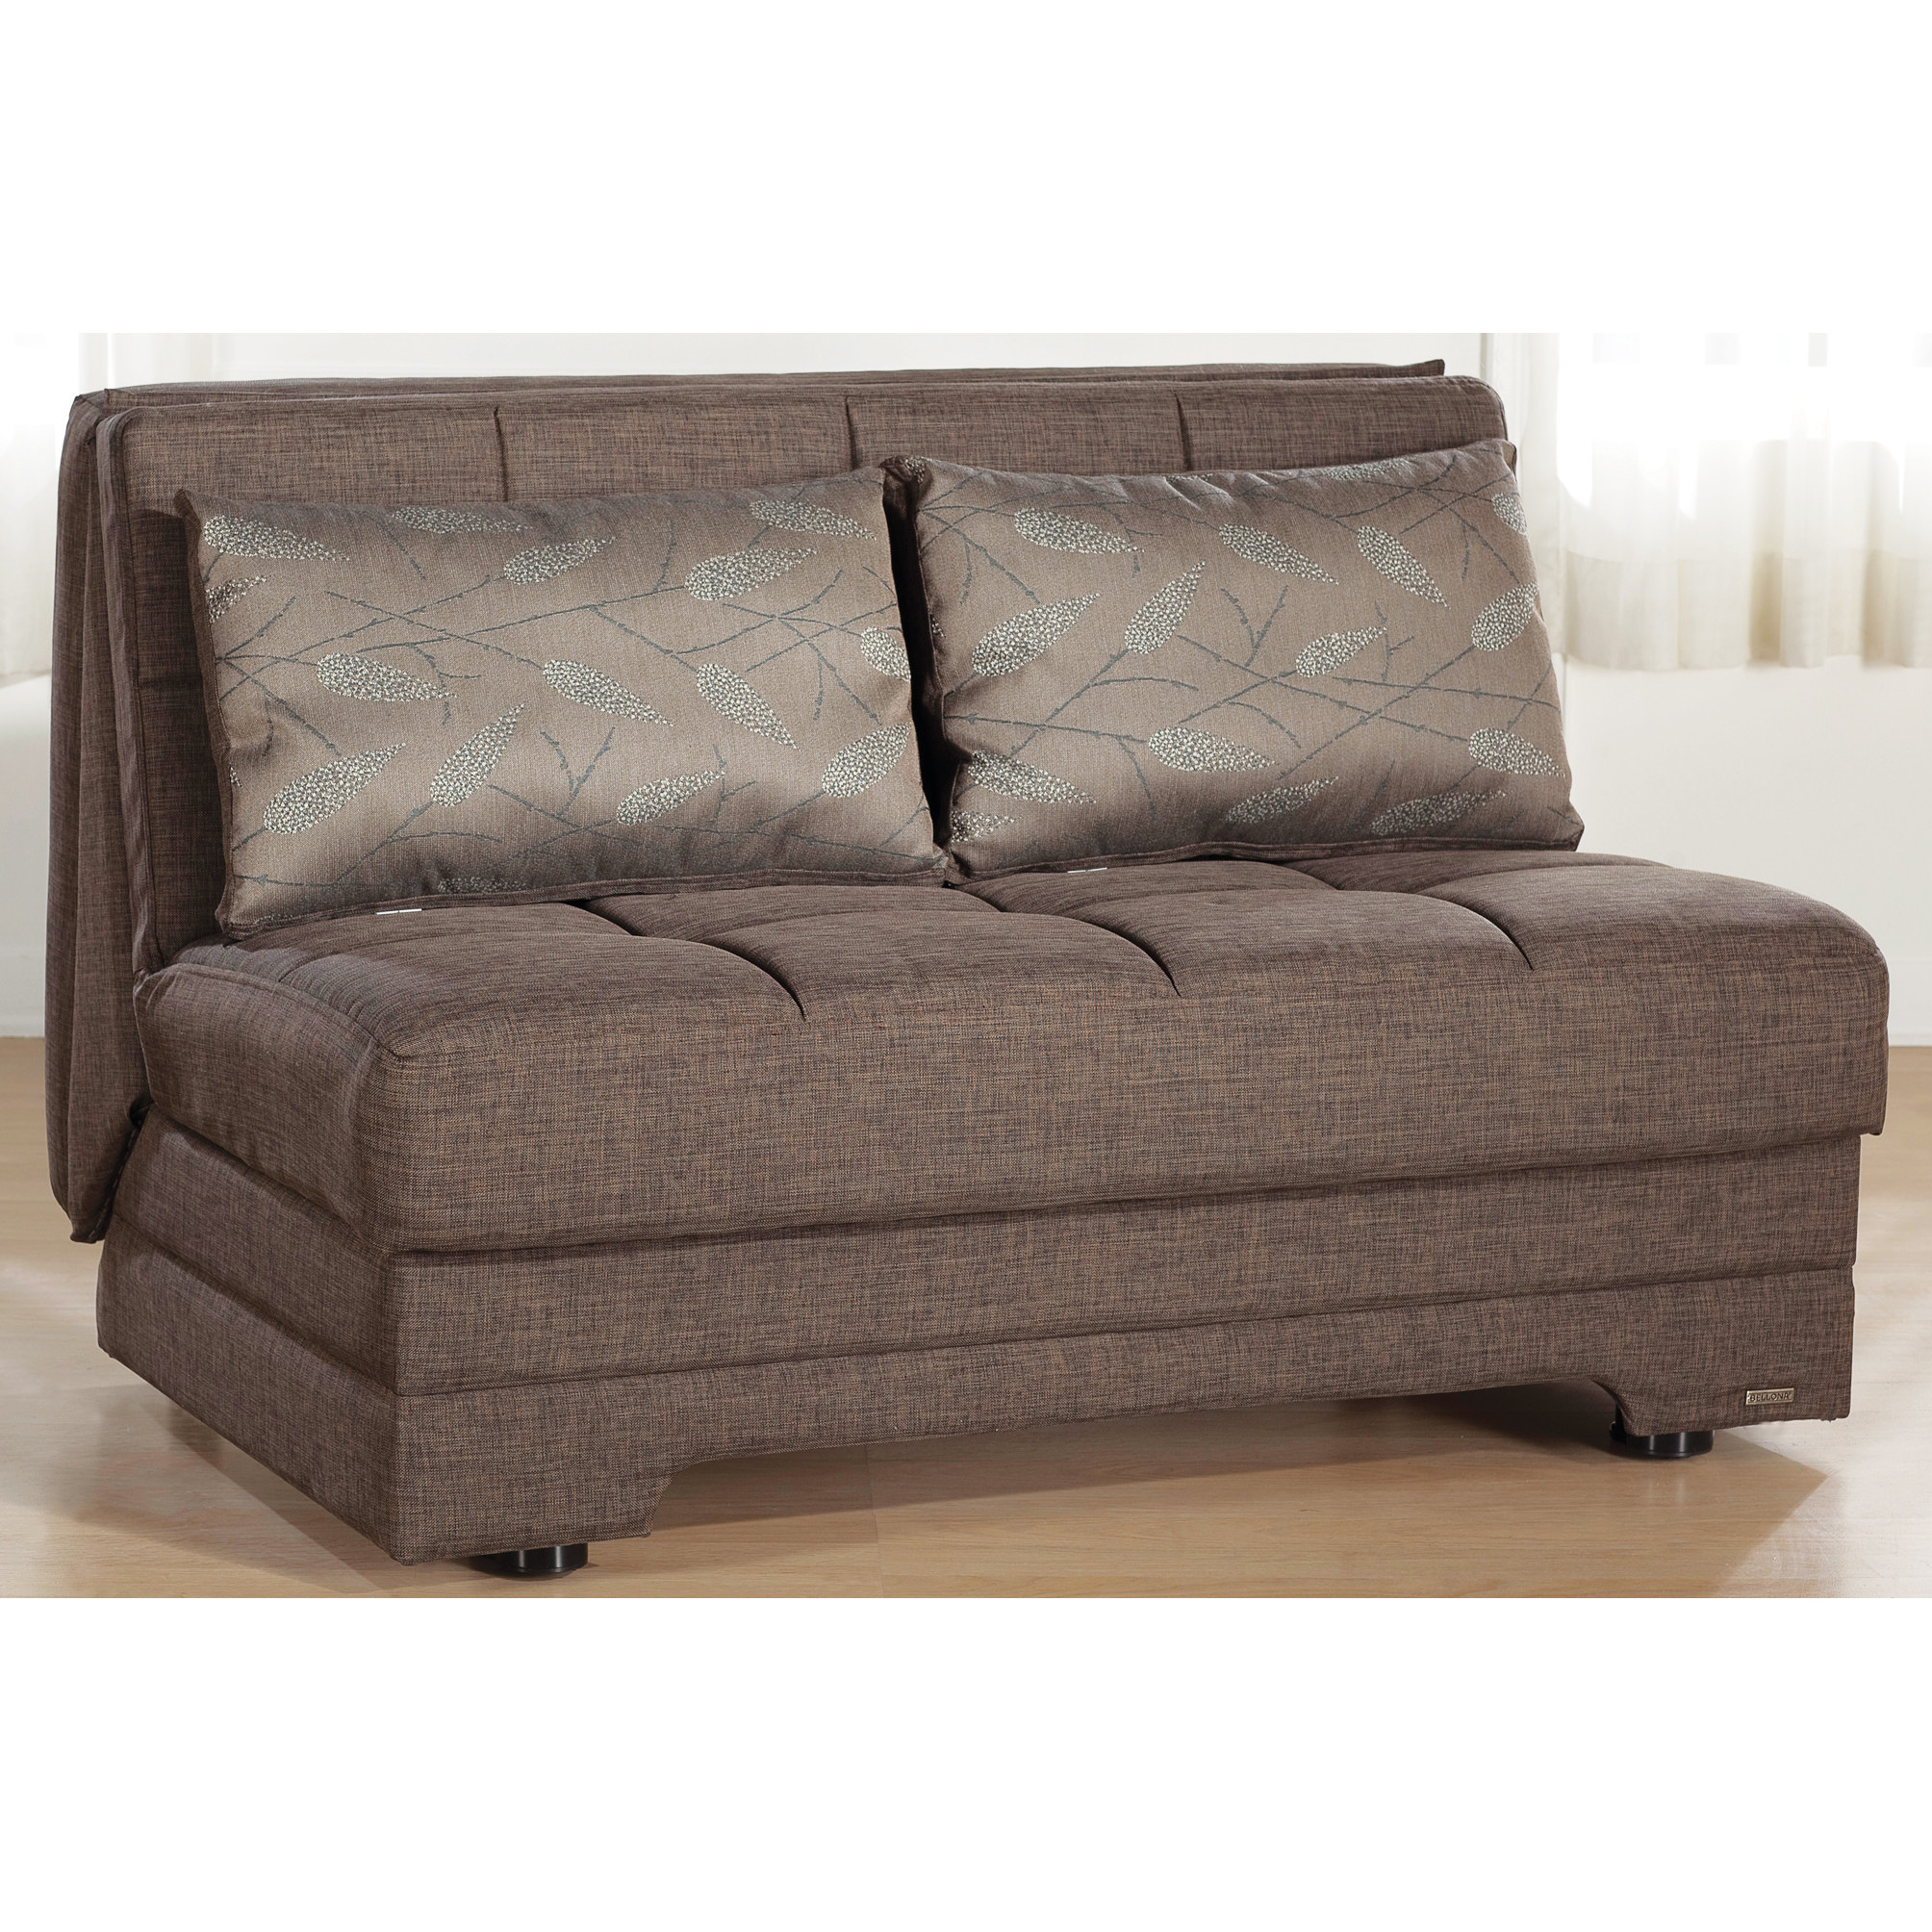 Furniture & Rug Cozy Loveseat Sleeper For Home Furniture Idea